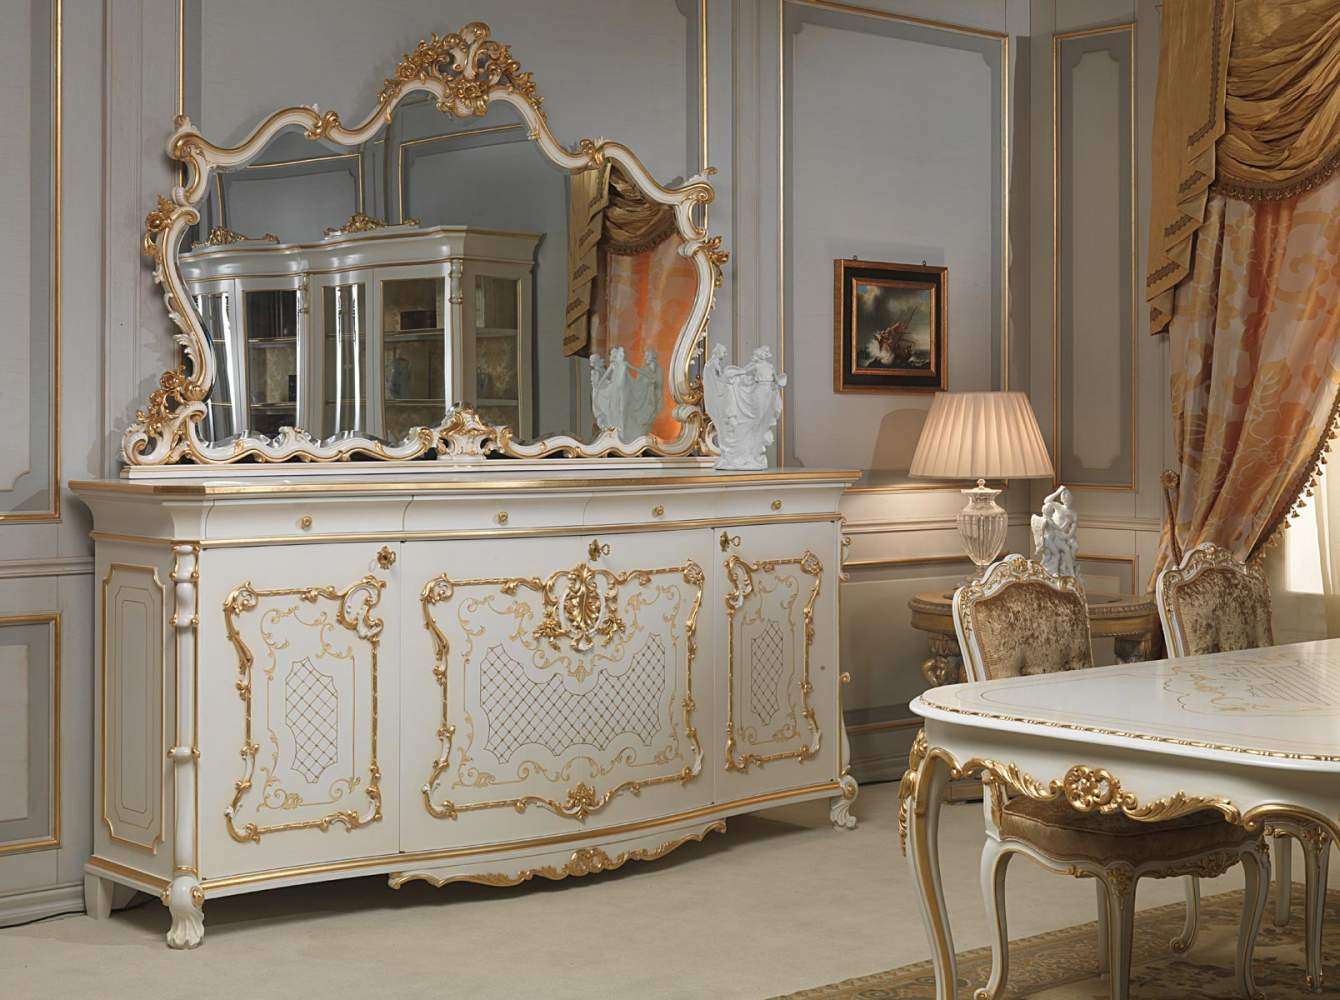 Sideboard, table and chairs in Louis XV style